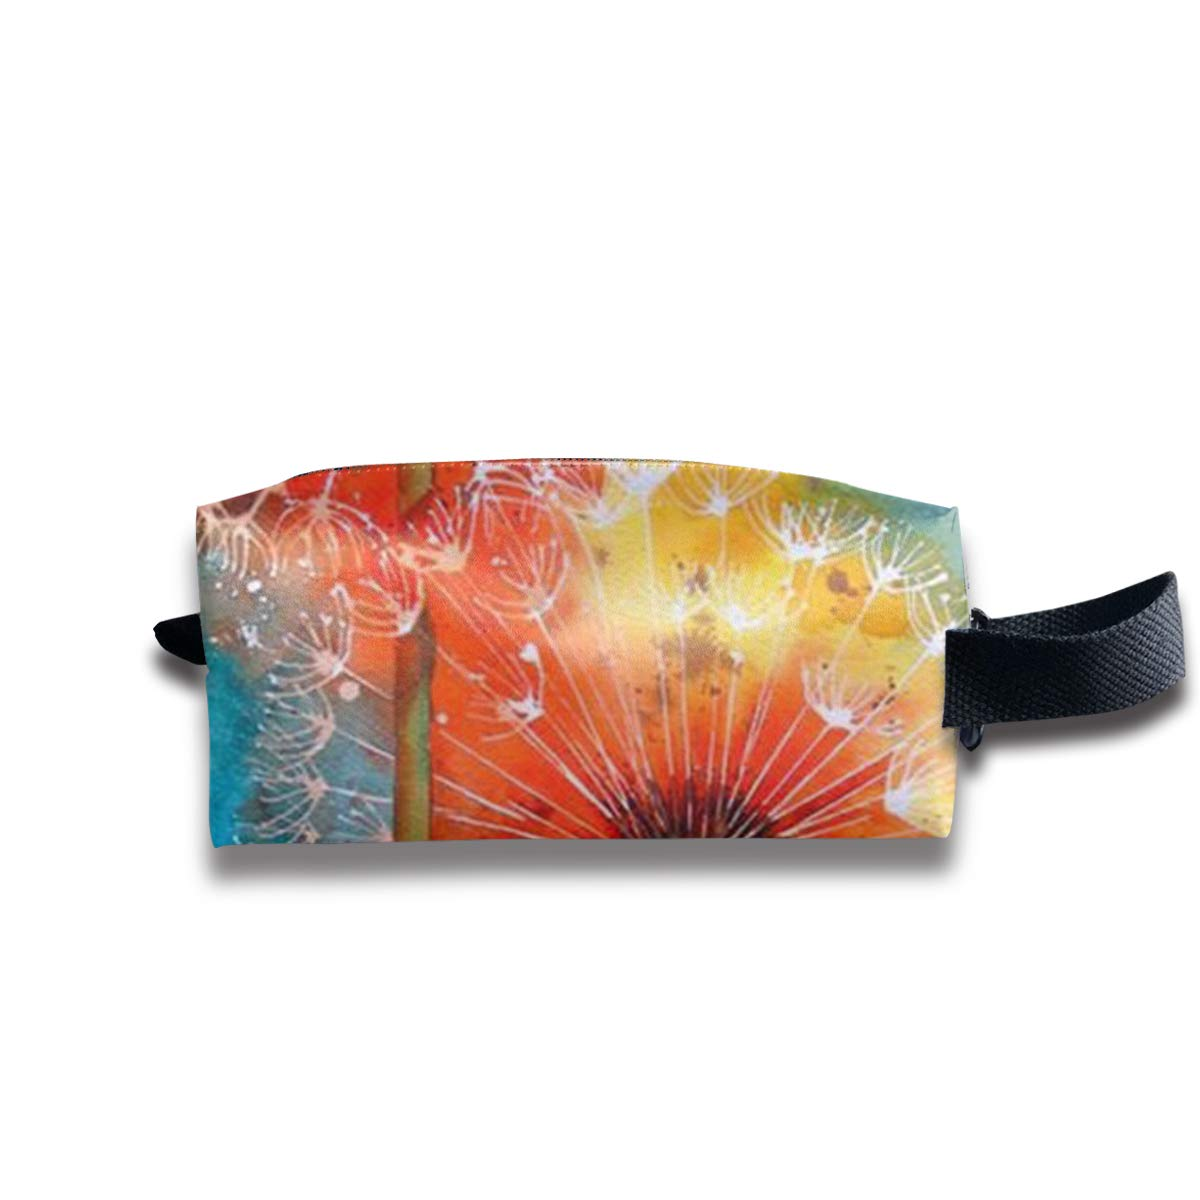 Novelty Colorful Watercolor Dandelion Portable Evening Bags Clutch Pouch Purse Handbags Cell Phone Wrist Handbags For Womens